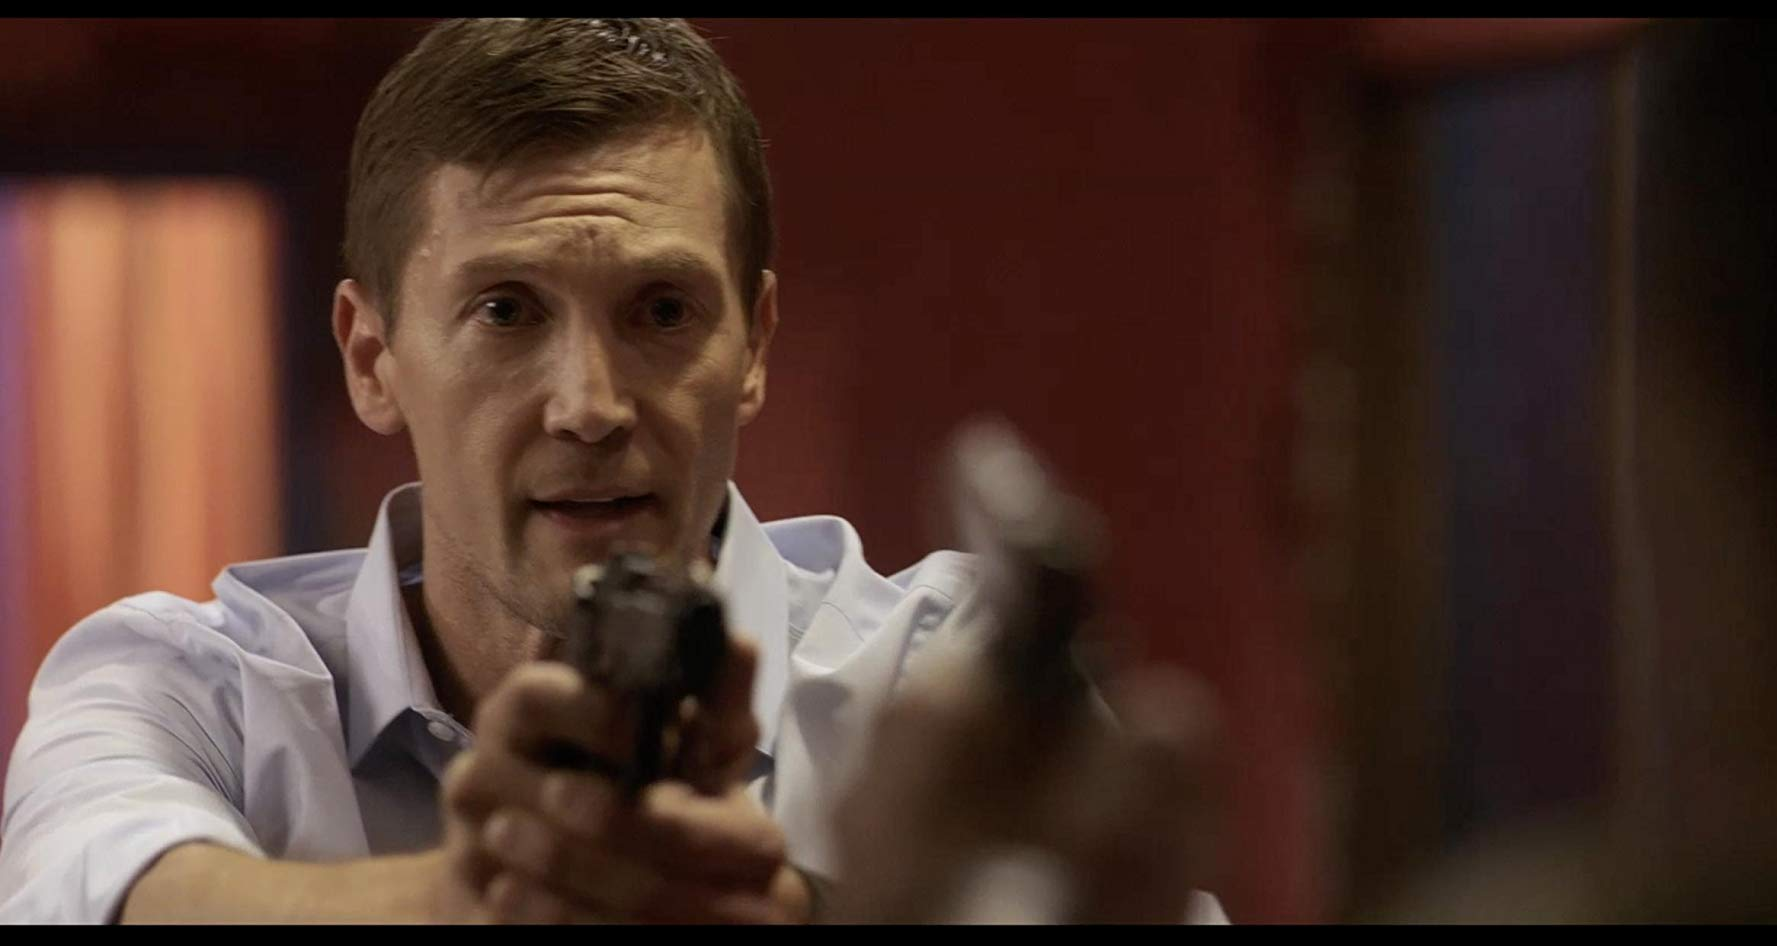 Adam Ambruso as officer Randy in 'Butterfly Caught'. (IMDb)